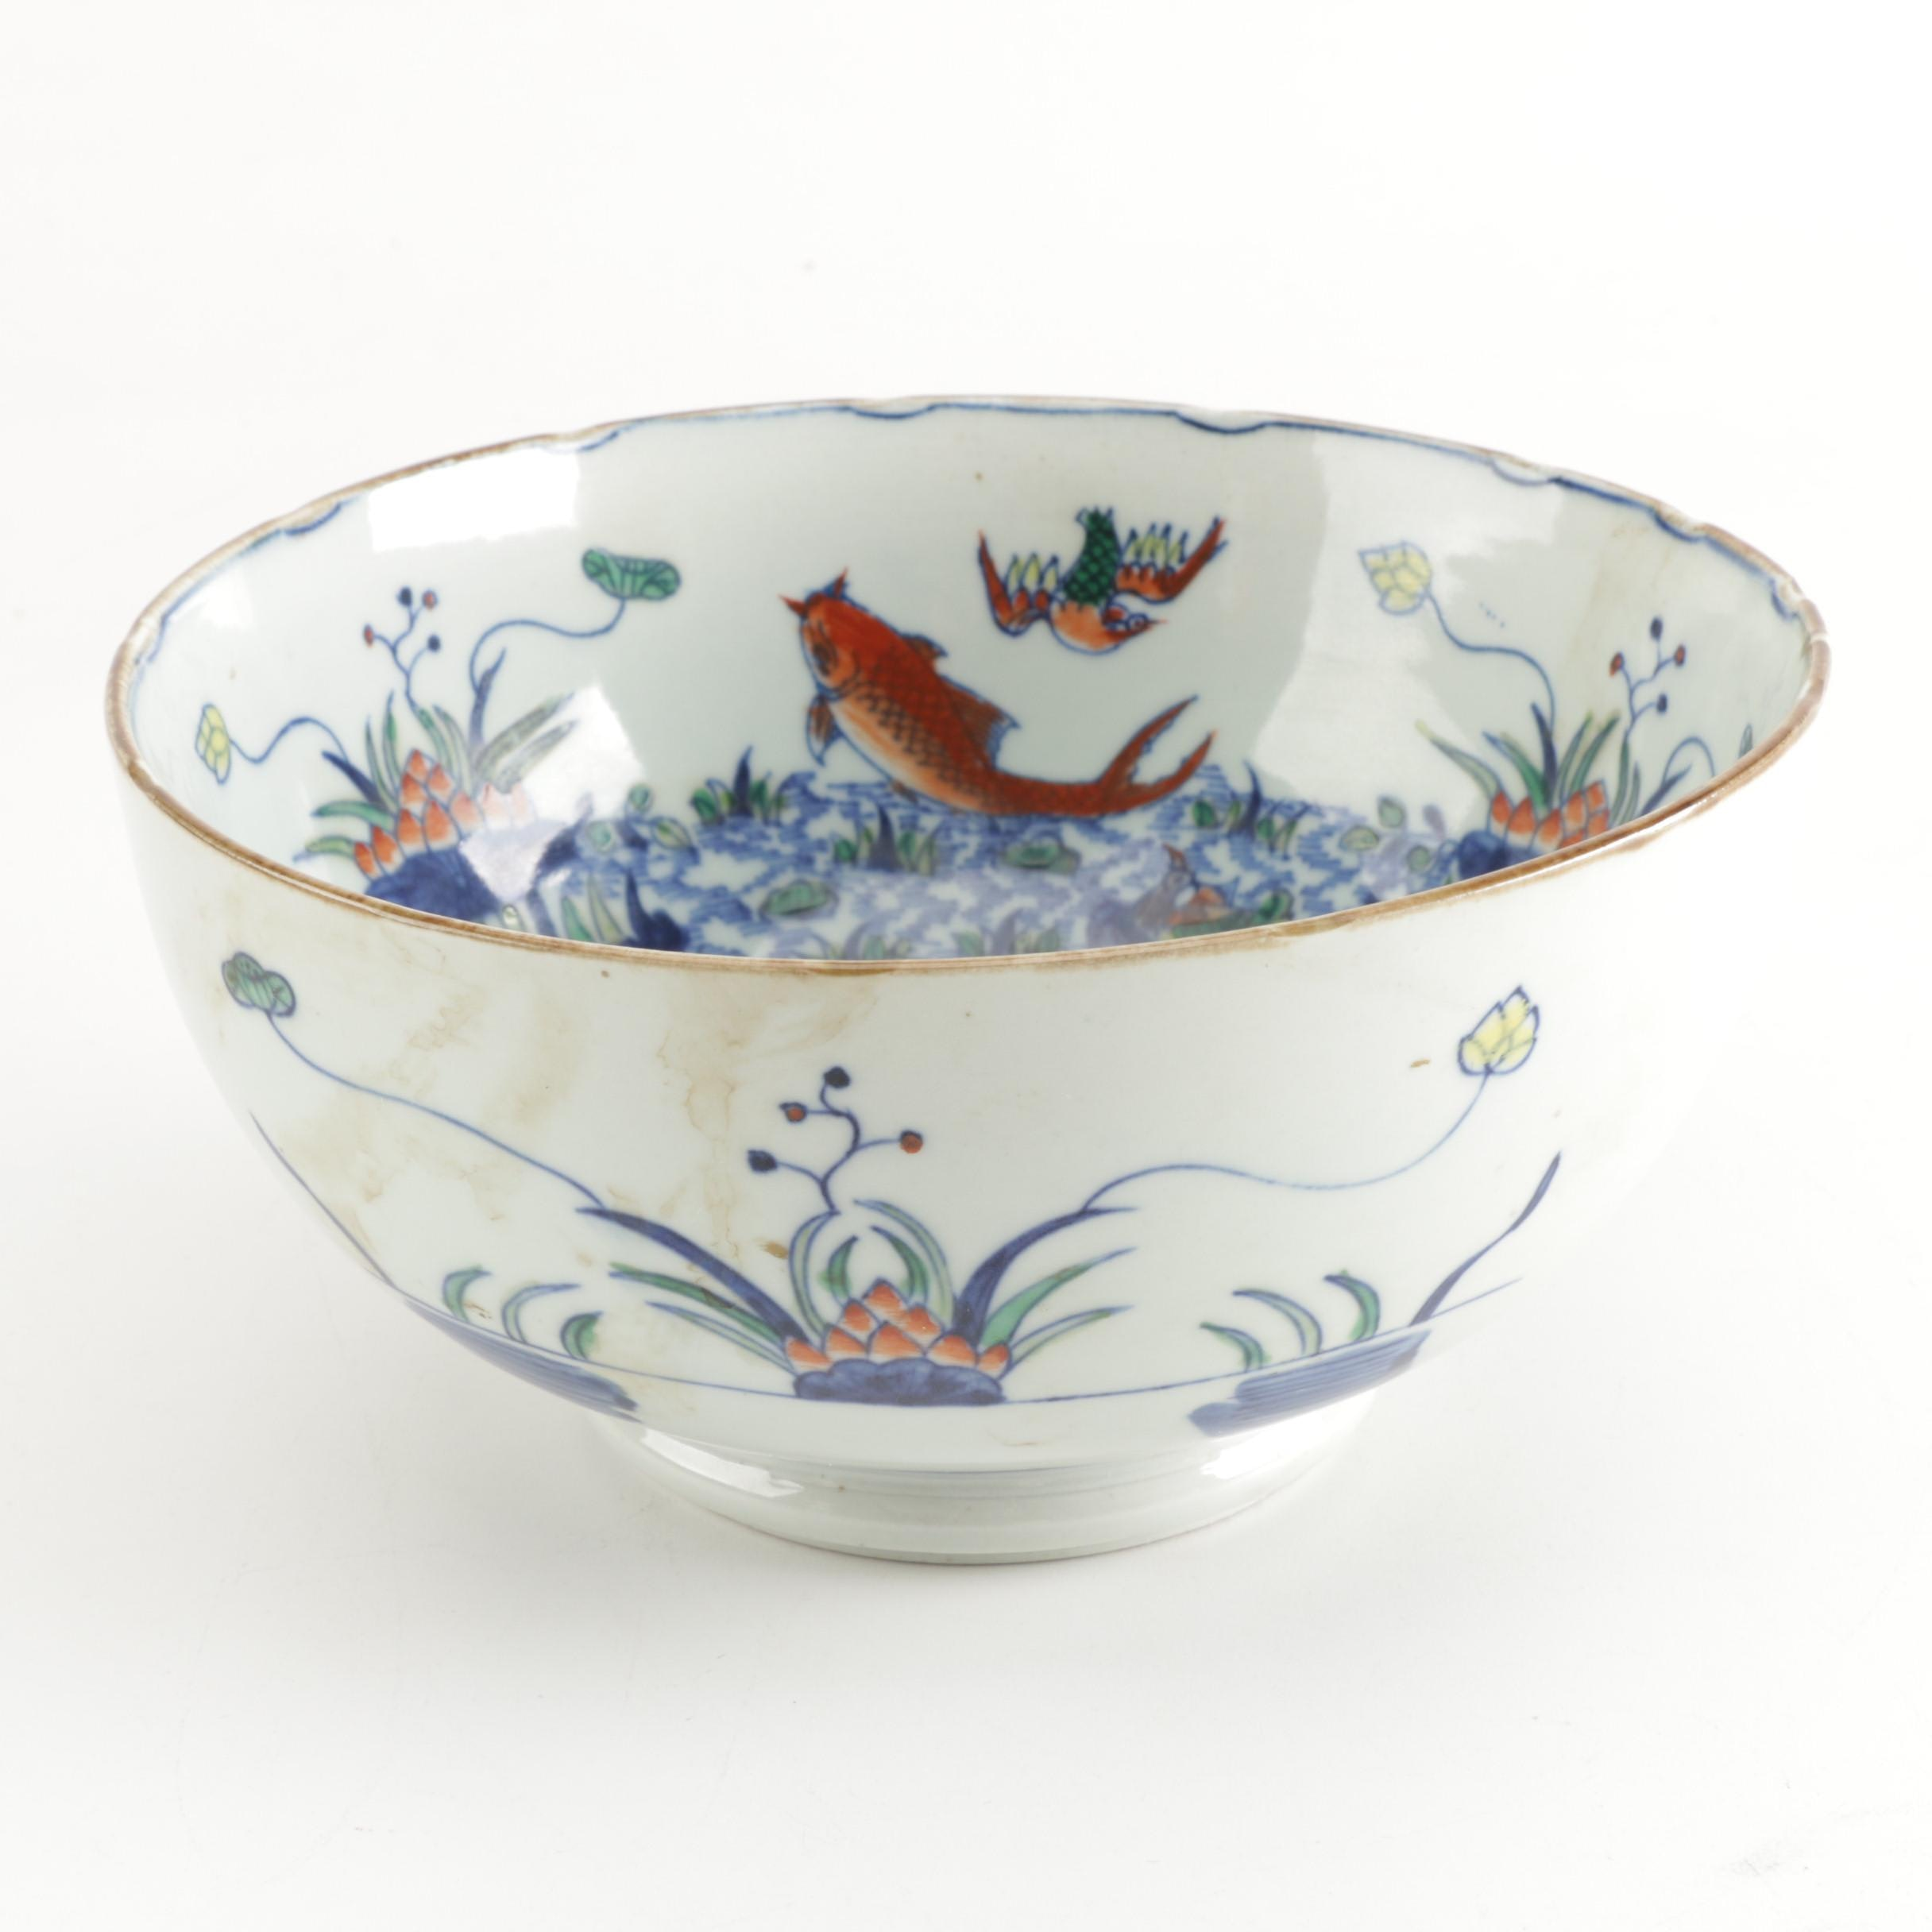 Chinese Hand-Painted Porcelain Bowl Depicting Koi Fish